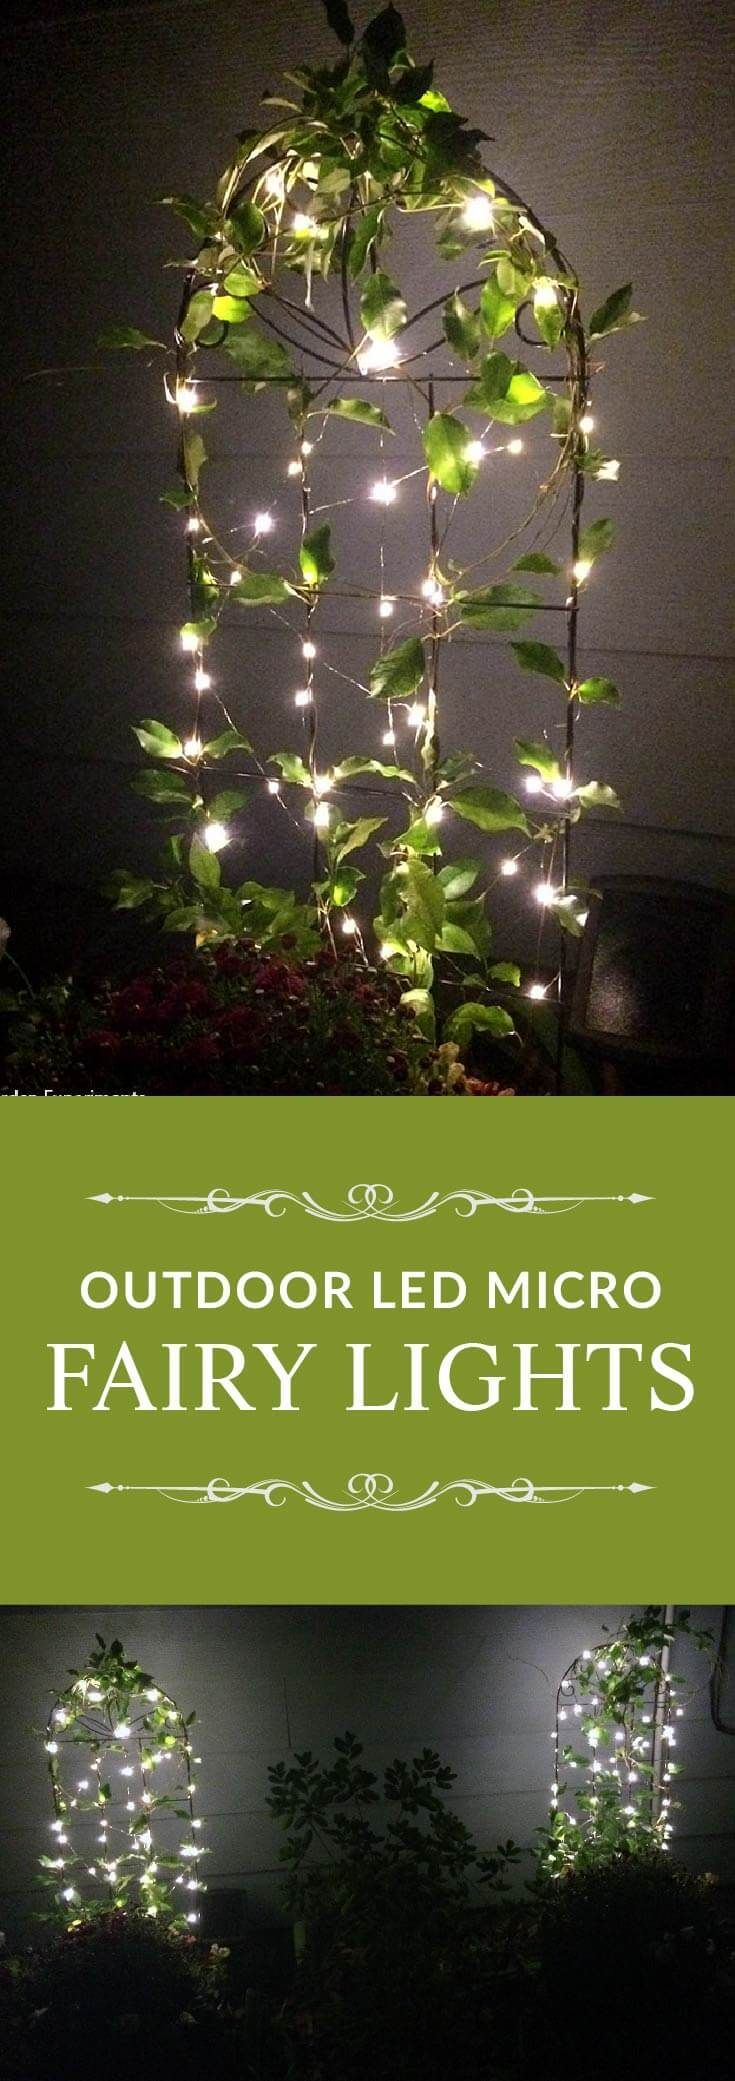 Cavalier round led illuminated bathroom mirror battery powered ebay - Add A Little Magic To Your Garden With These Battery Powered Led Fairy Lights